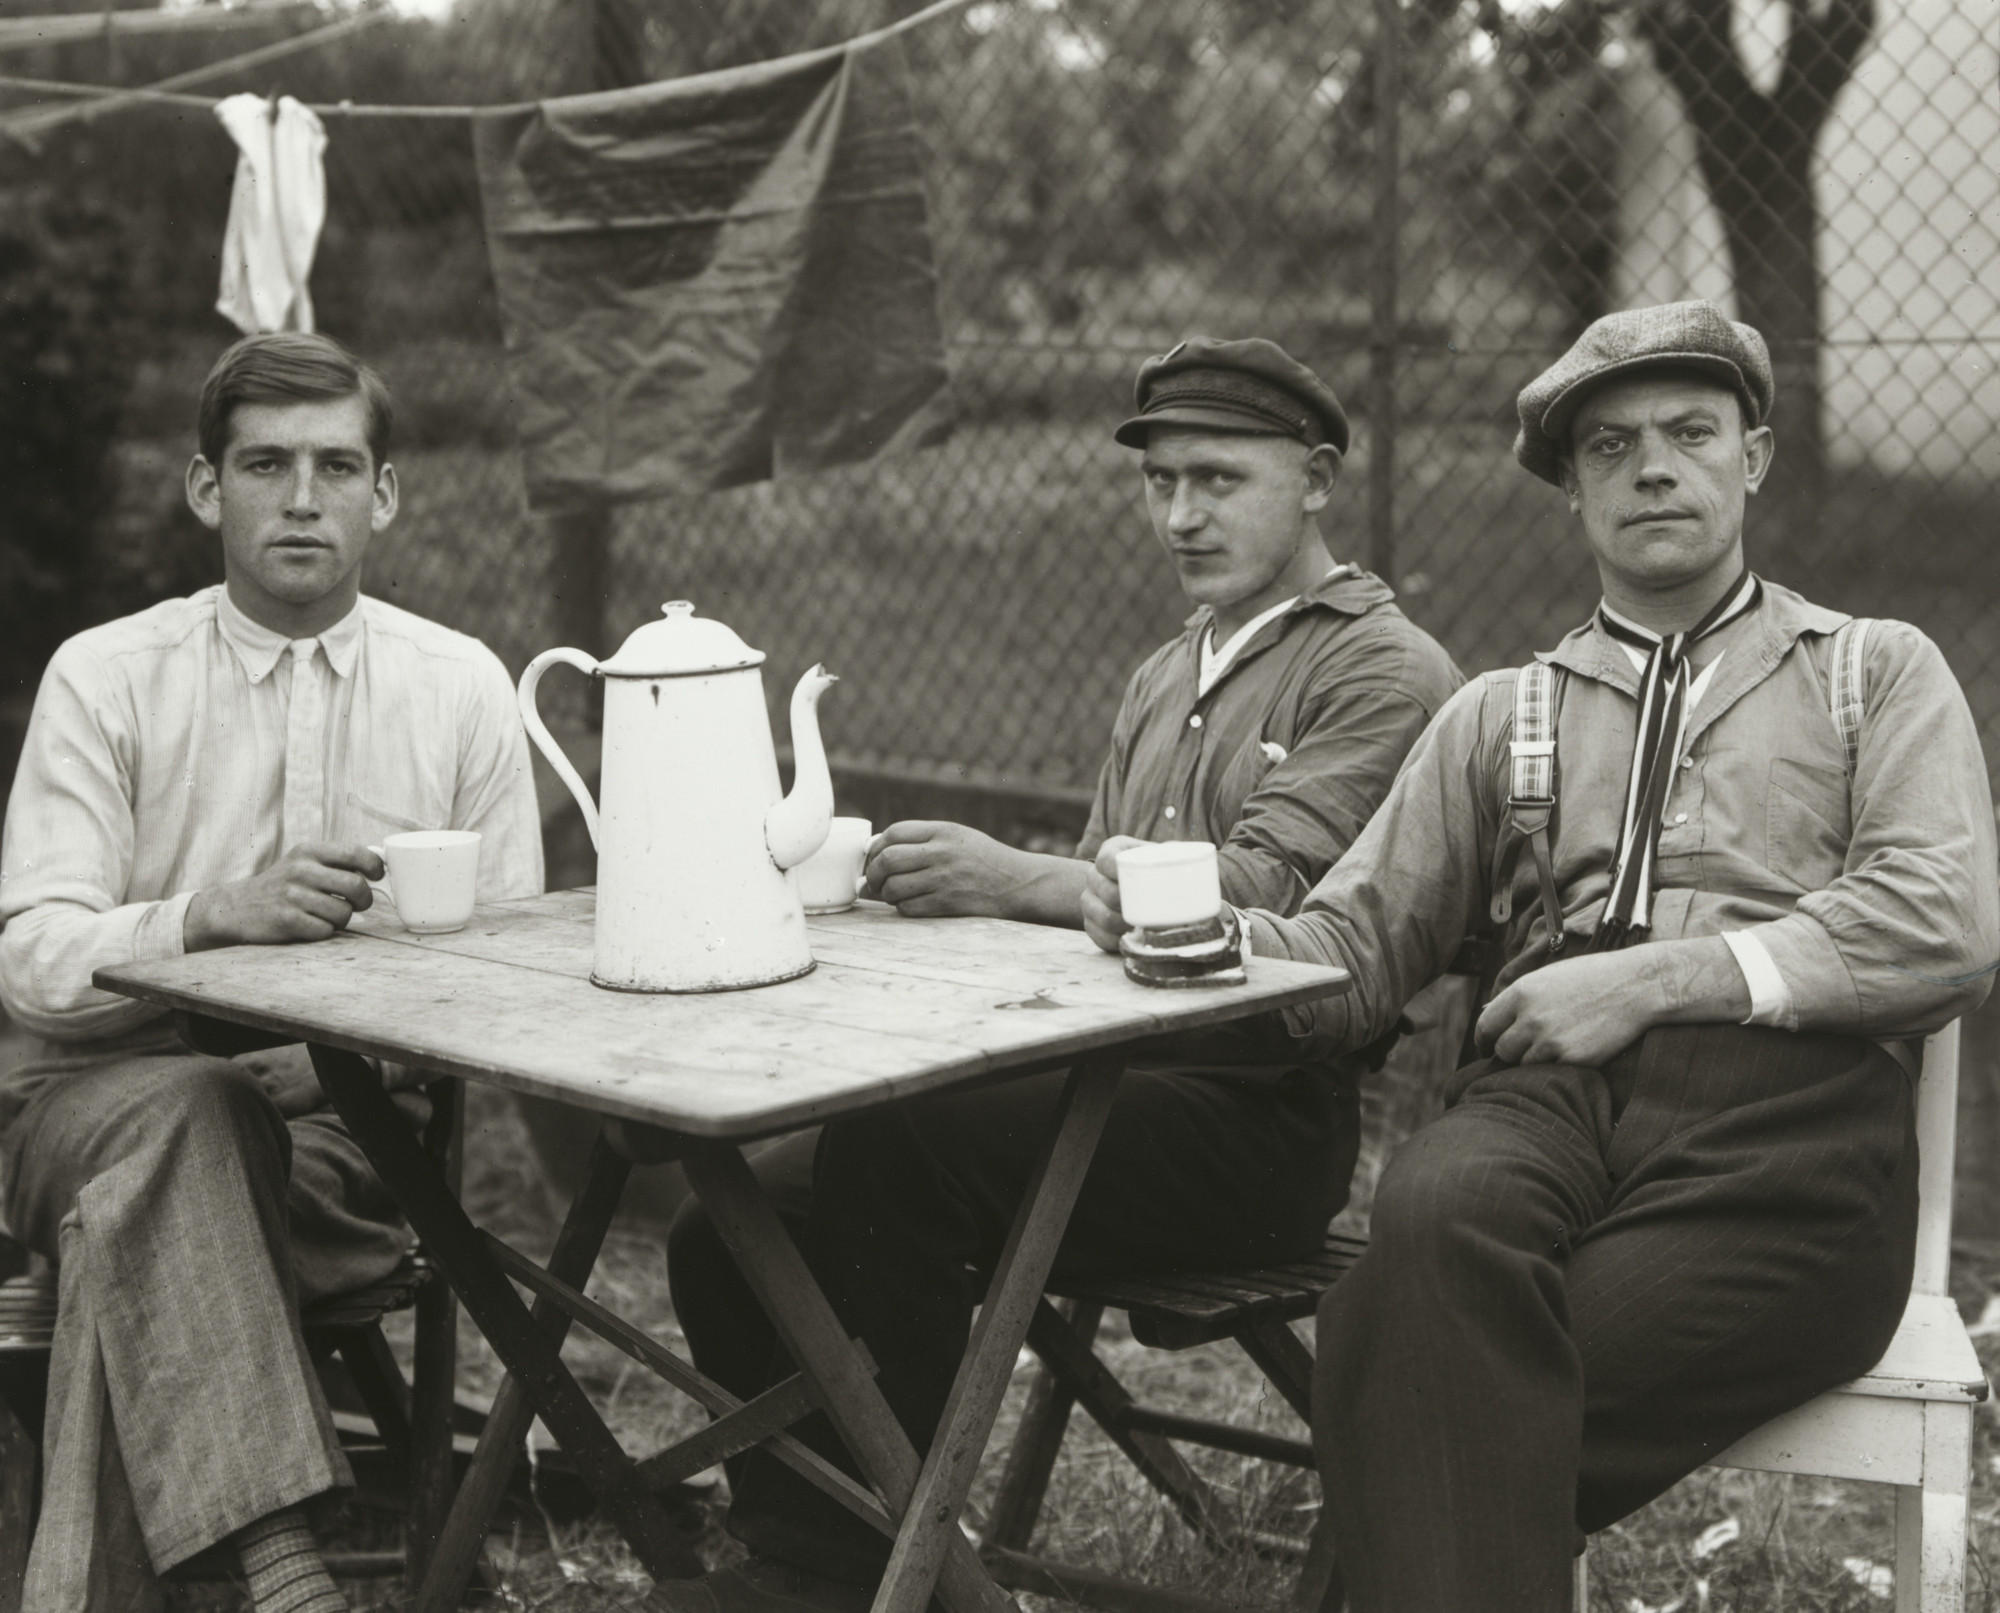 August Sander. Fairground Workers. 1926-32